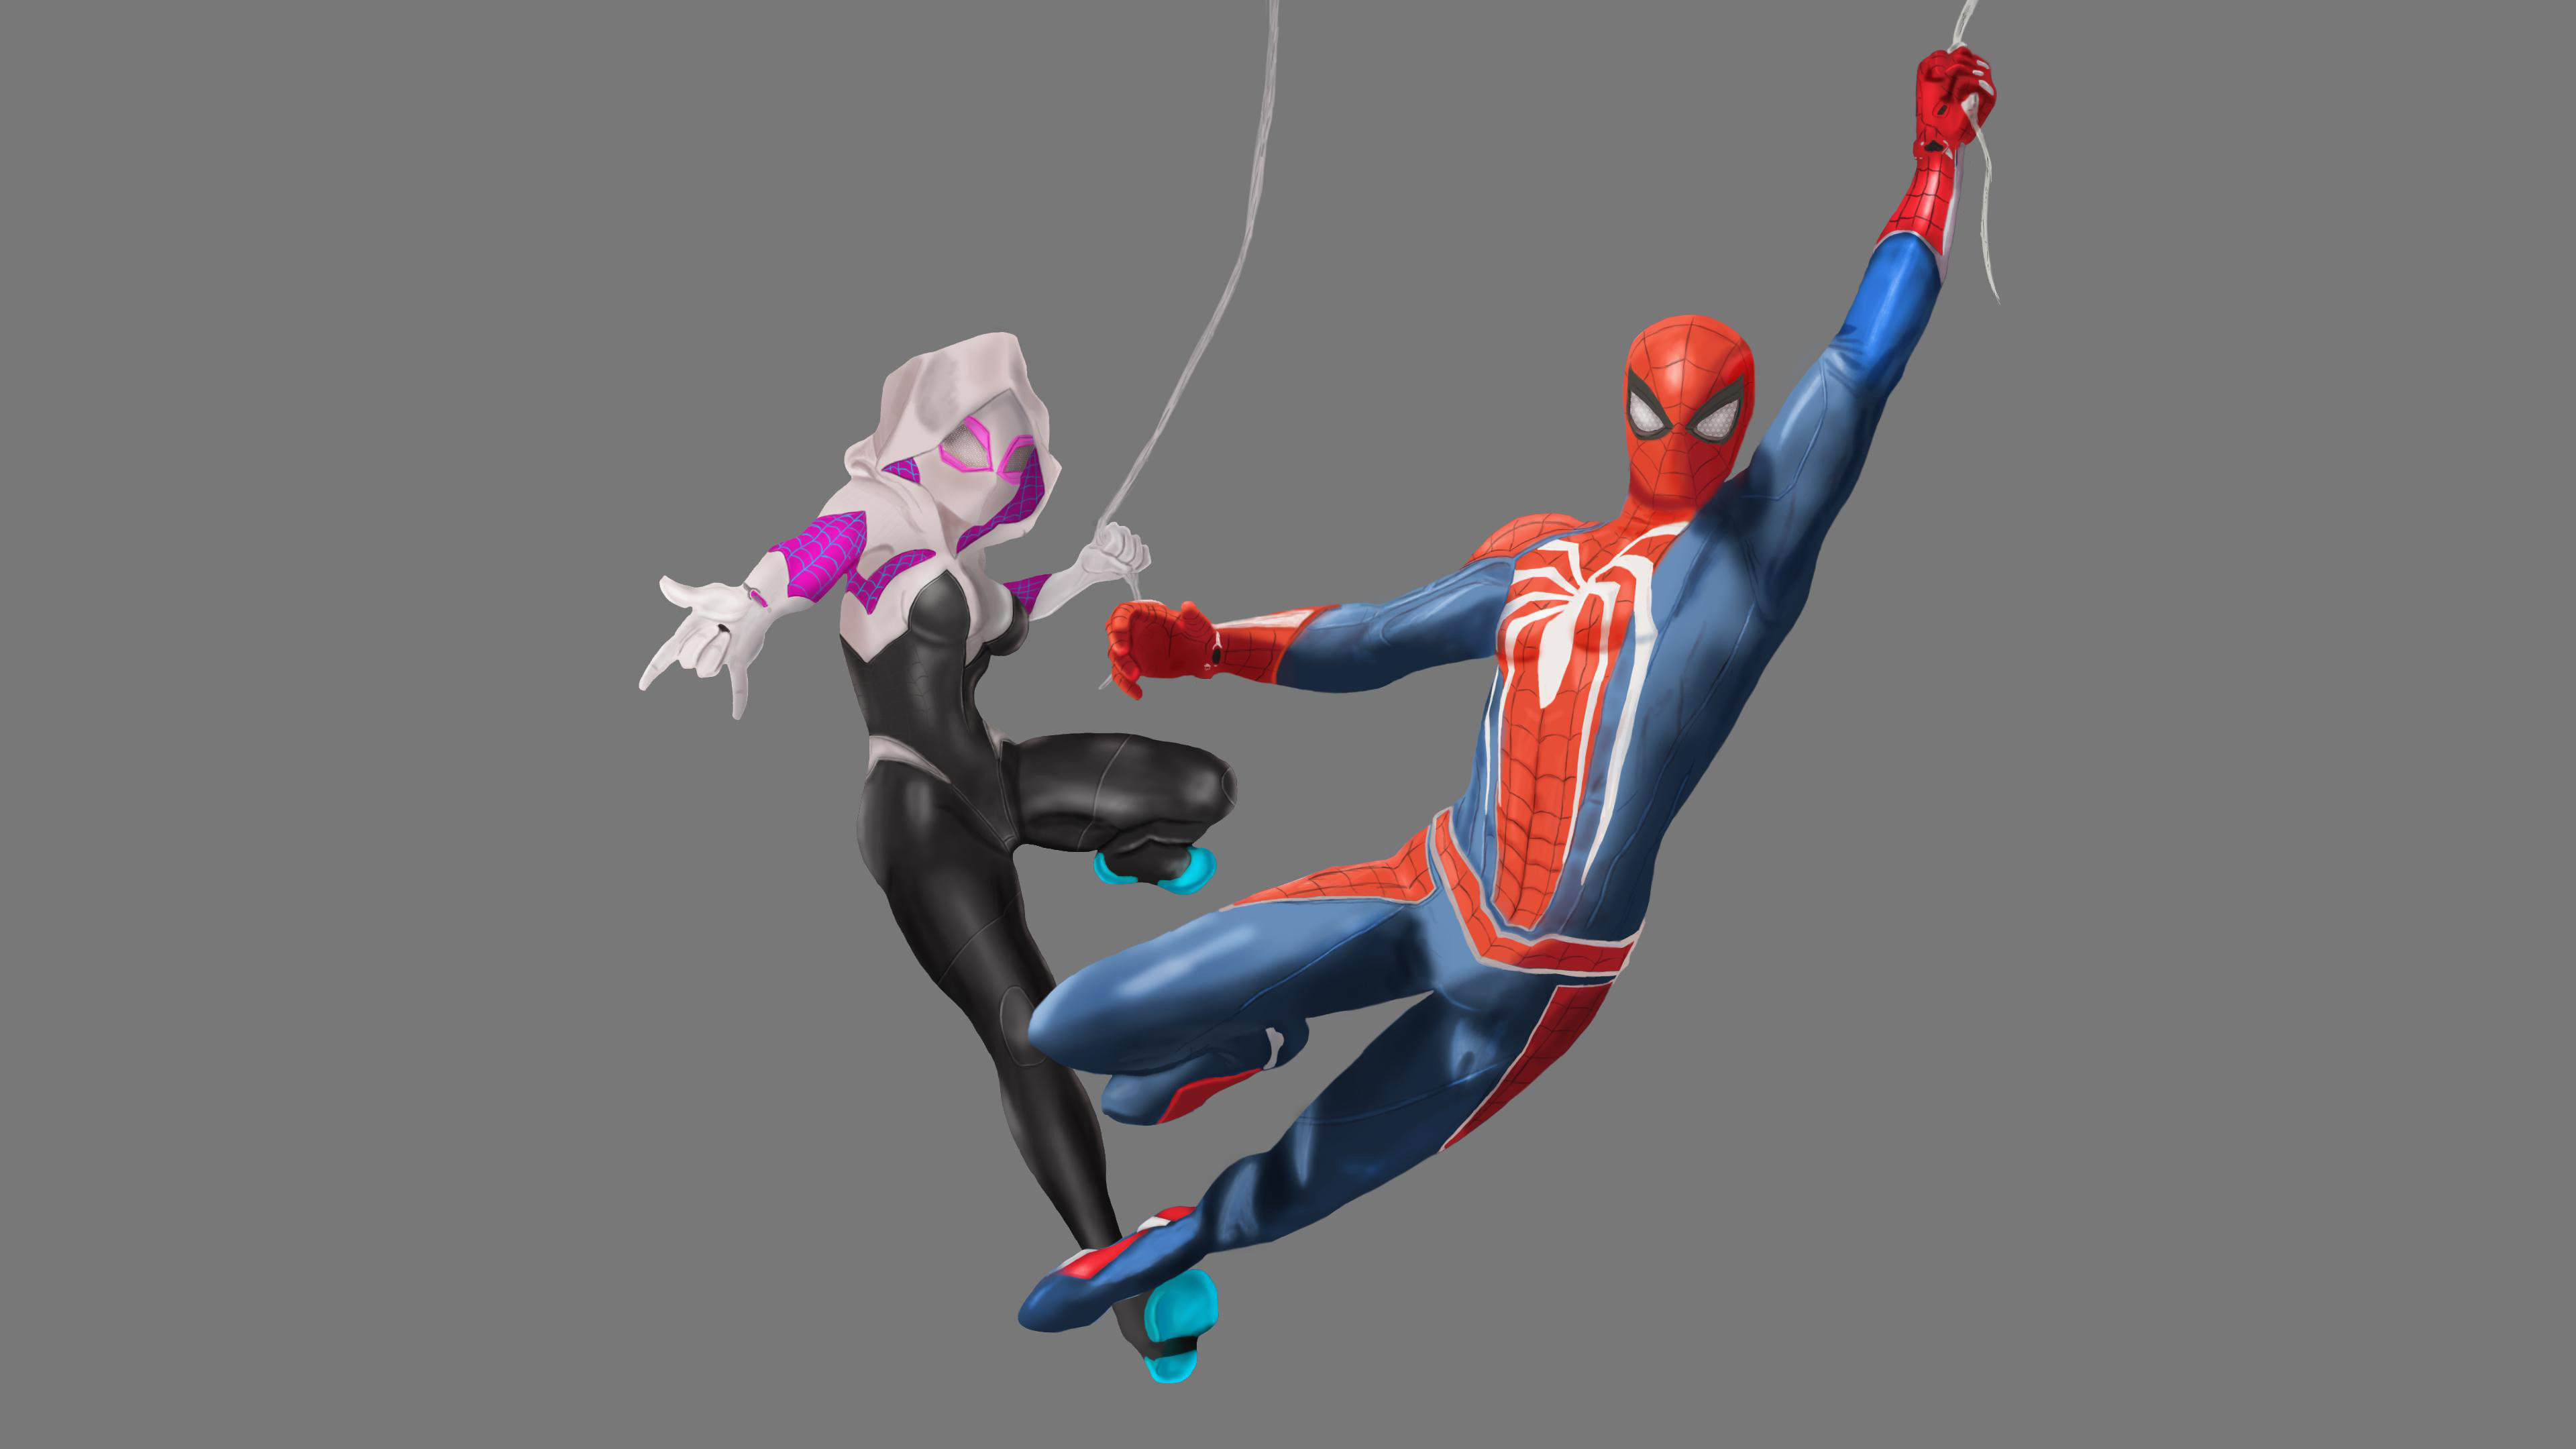 spiderman ps4 and spider gwen art 1536523727 - Spiderman Ps4 And Spider Gwen Art - superheroes wallpapers, spiderman wallpapers, reddit wallpapers, ps4 games wallpapers, ps games wallpapers, hd-wallpapers, gwen stacy wallpapers, games wallpapers, artwork wallpapers, artist wallpapers, 4k-wallpapers